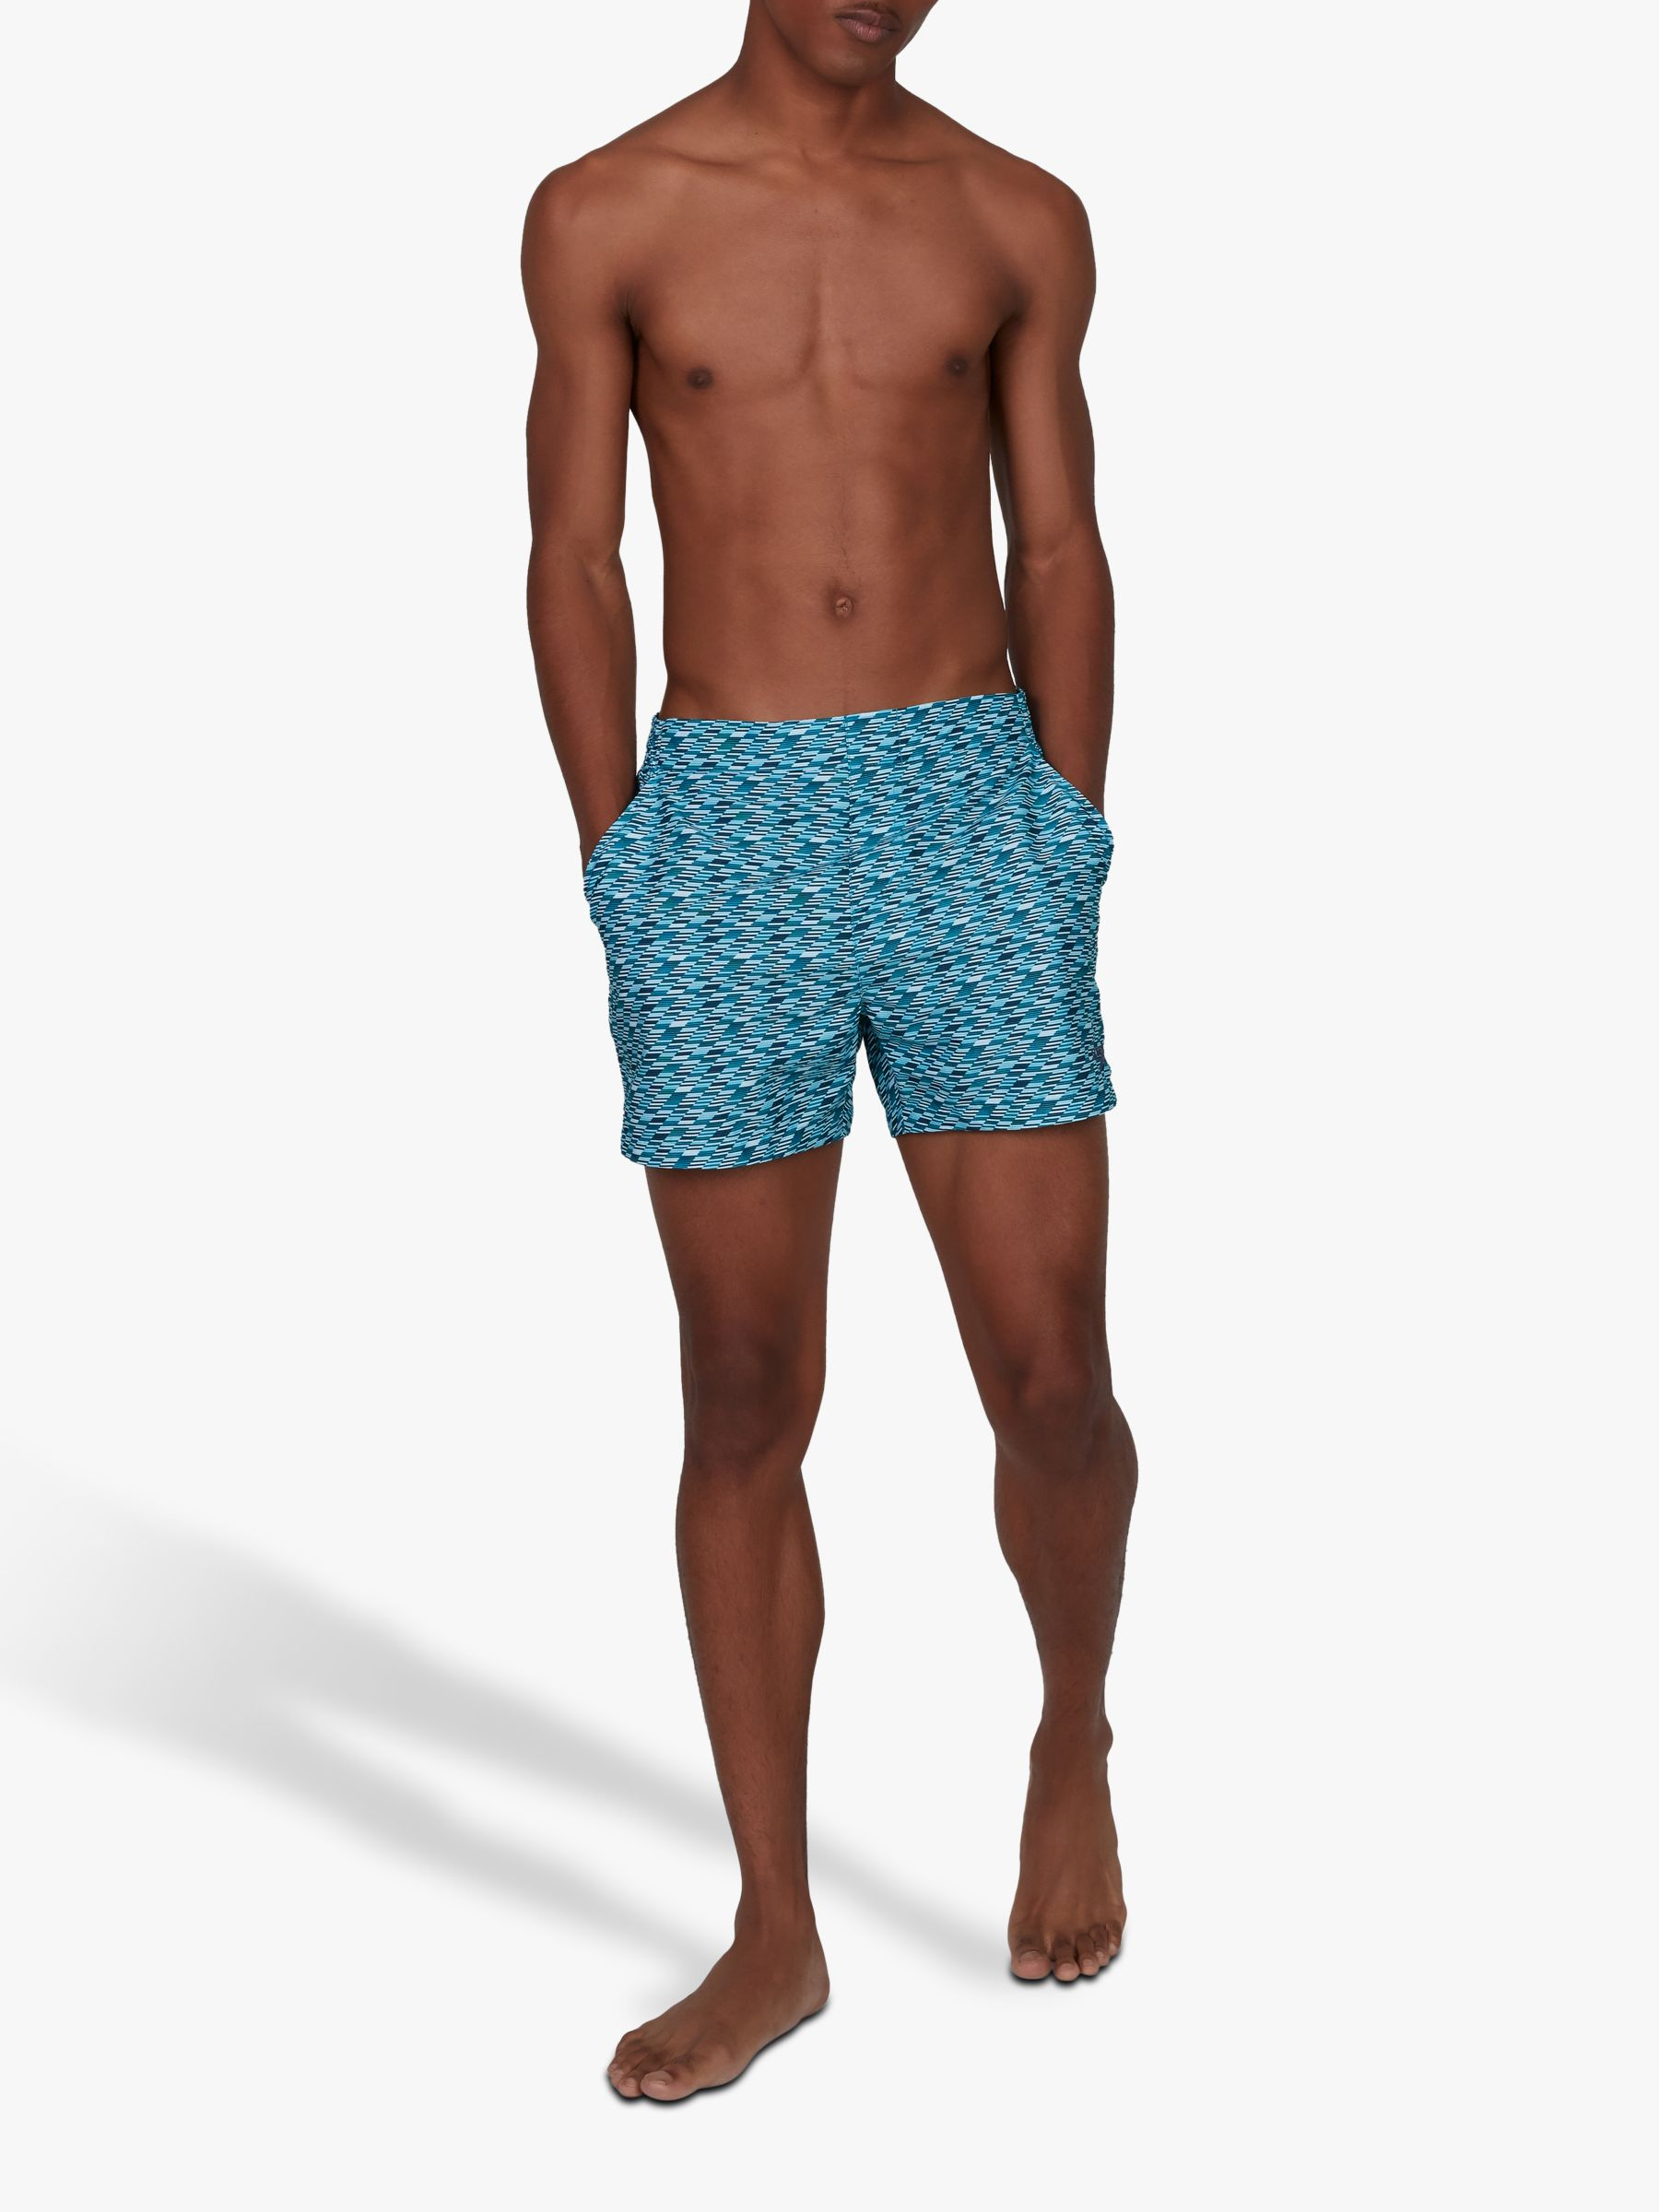 Speedo Speedo Vintage Leisure 14 Swim Shorts